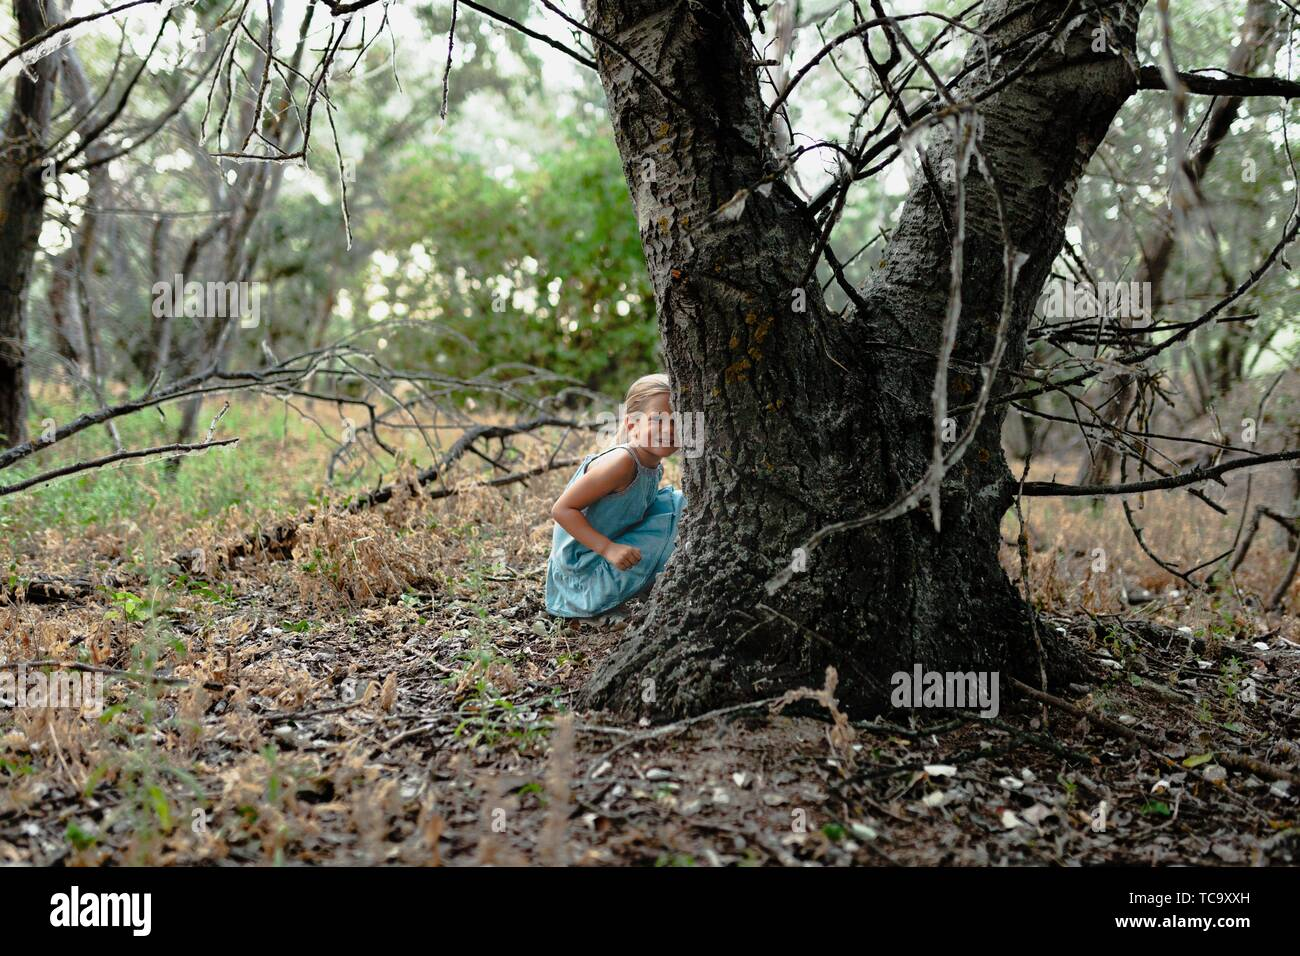 Young blonde girl crouched on the ground near a tree wearing a dress in the sunset field. Stock Photo